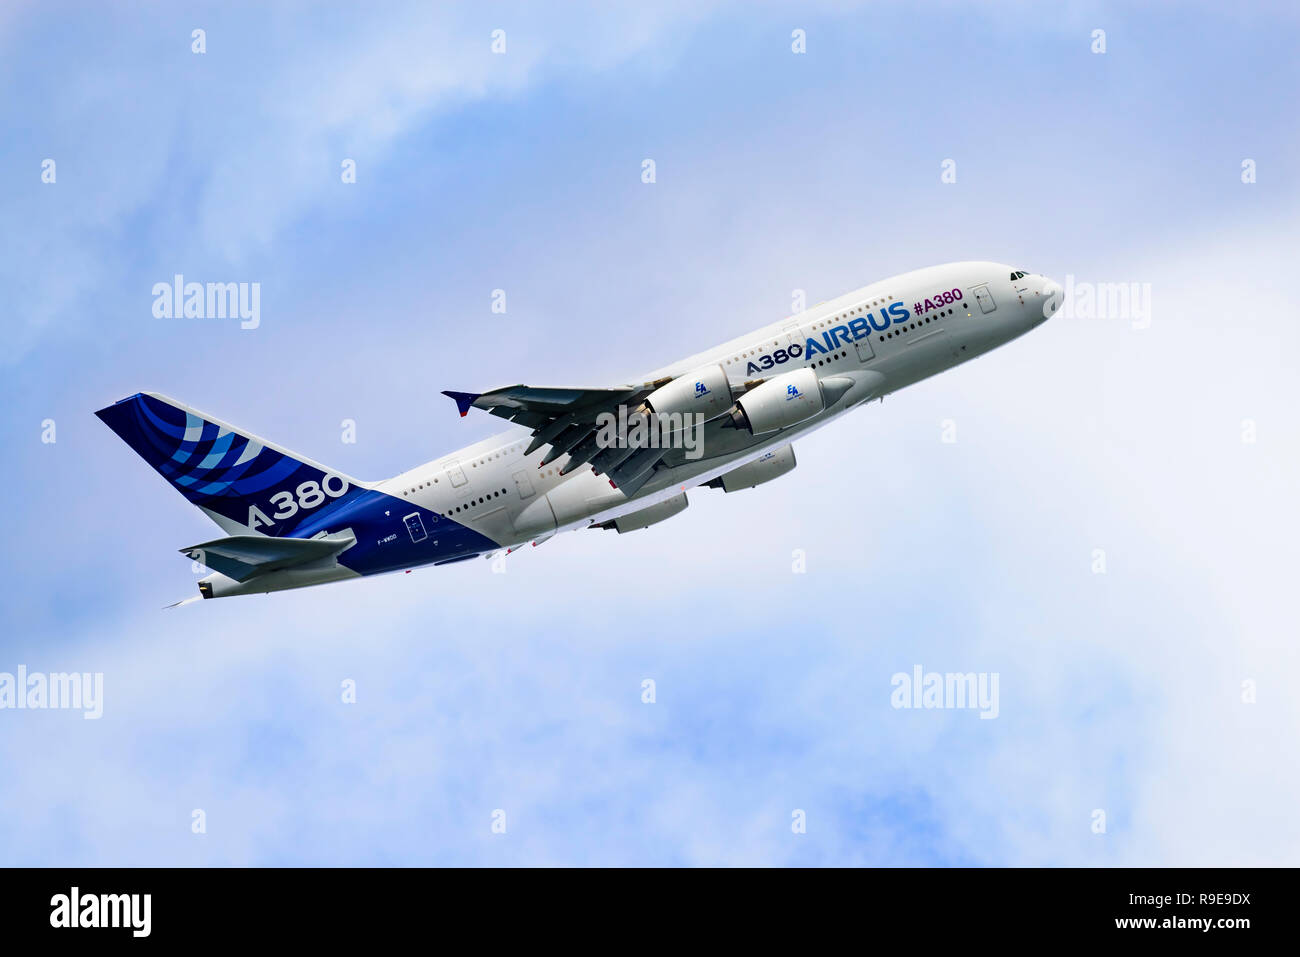 Airbus A380 airliner climbs away after take-off, giving a side view and showing the windows of the two passenger decks. Stock Photo